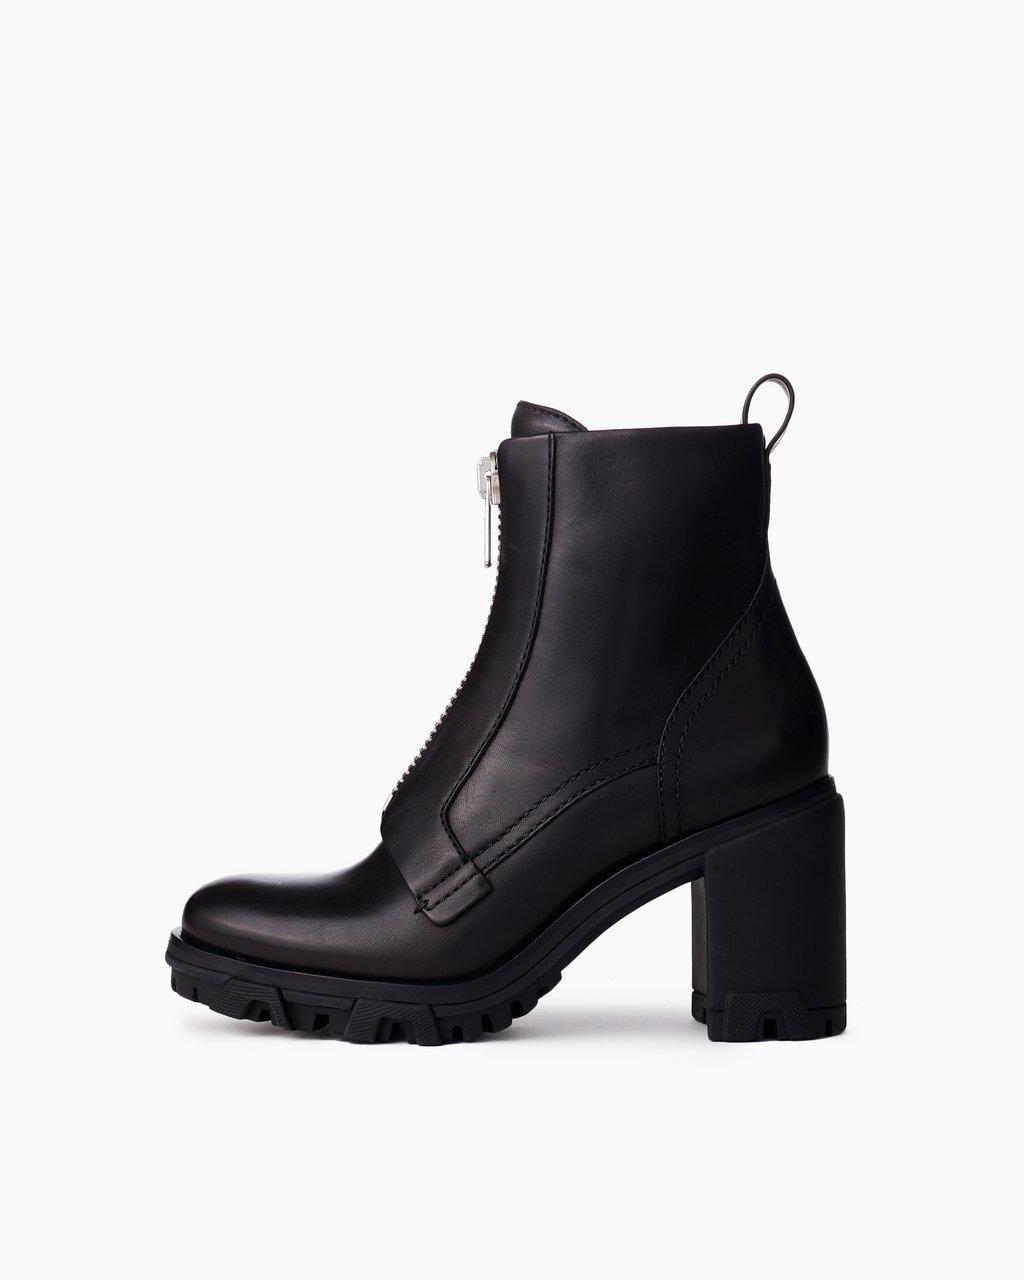 Shiloh High Zip Boot - Leather